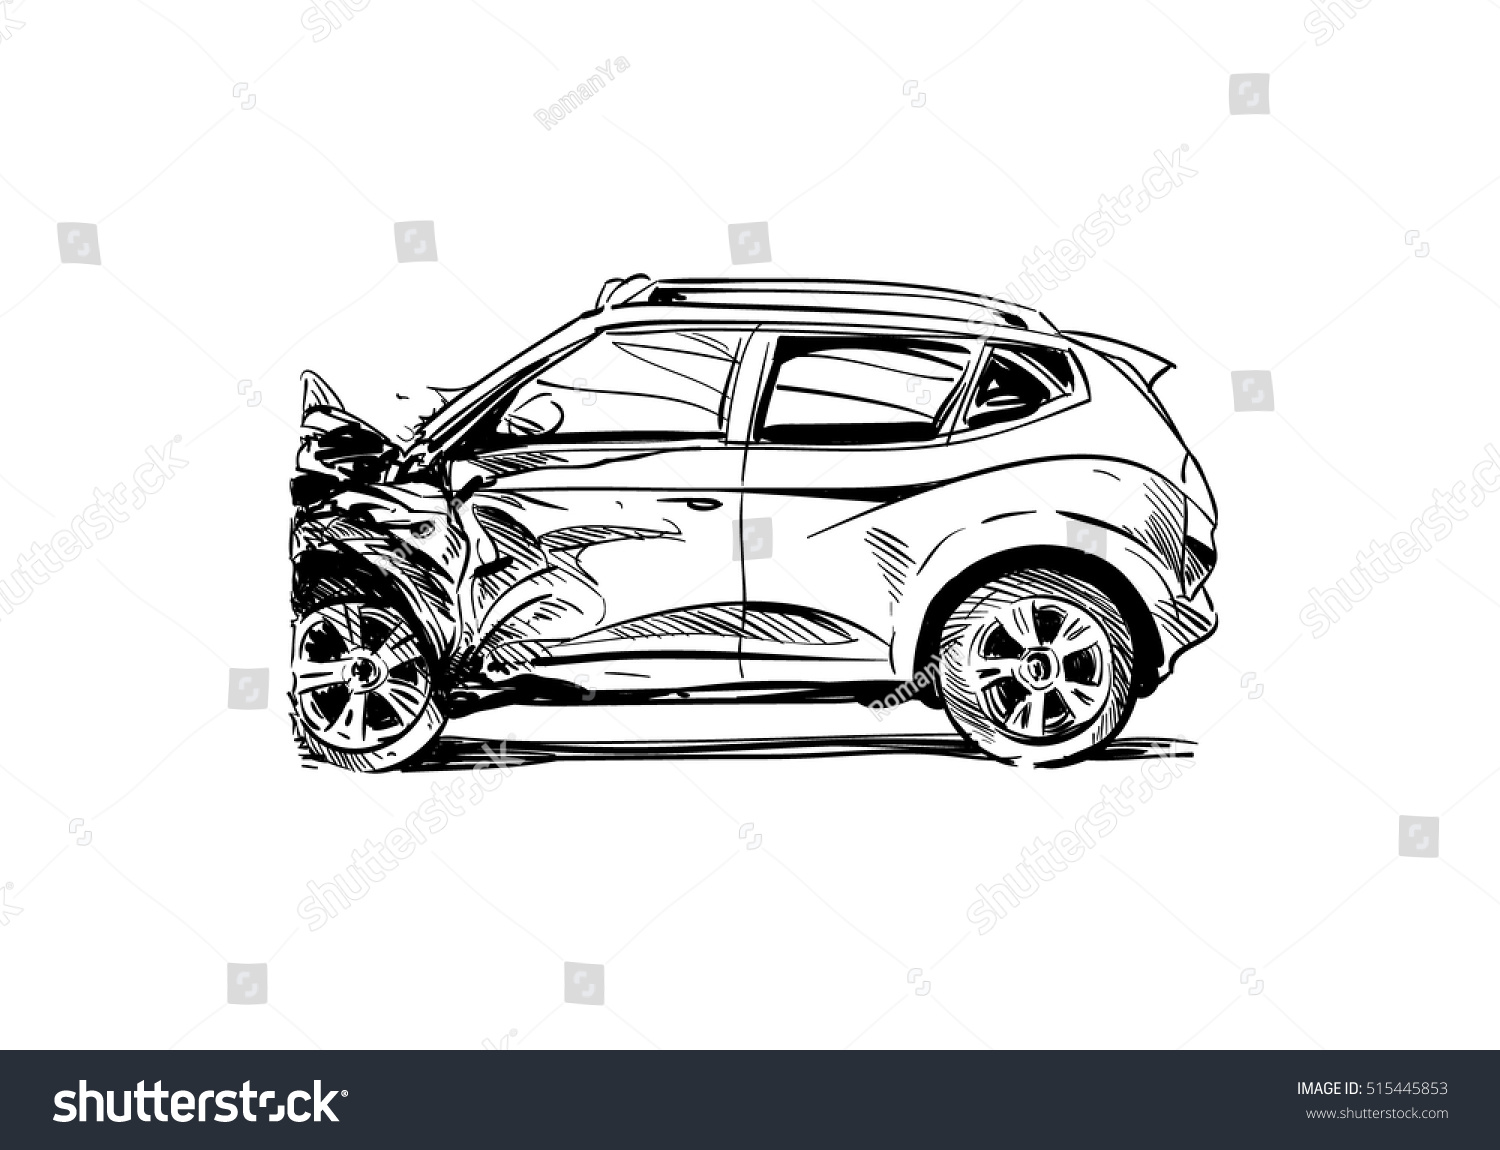 Royalty-free Hand drawn car crash illustration. Auto… #515445853 ...